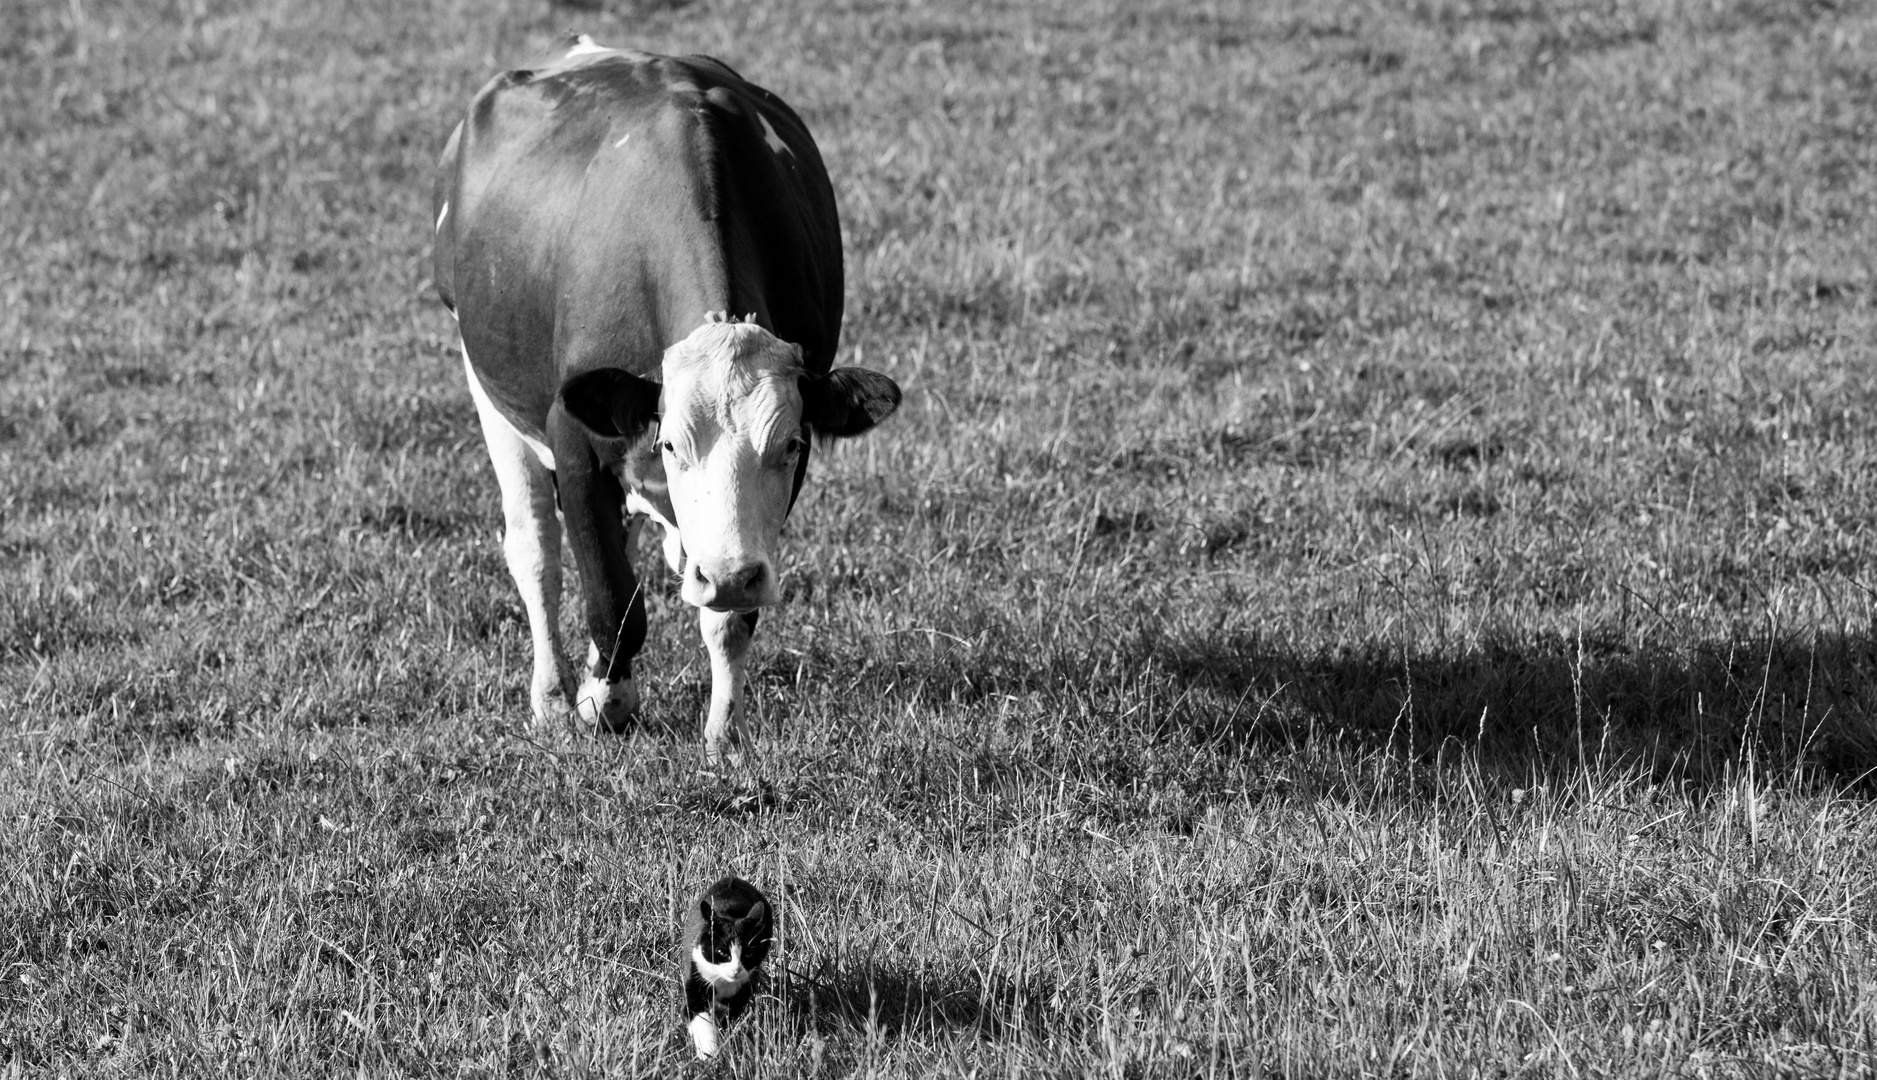 the cat & the cow